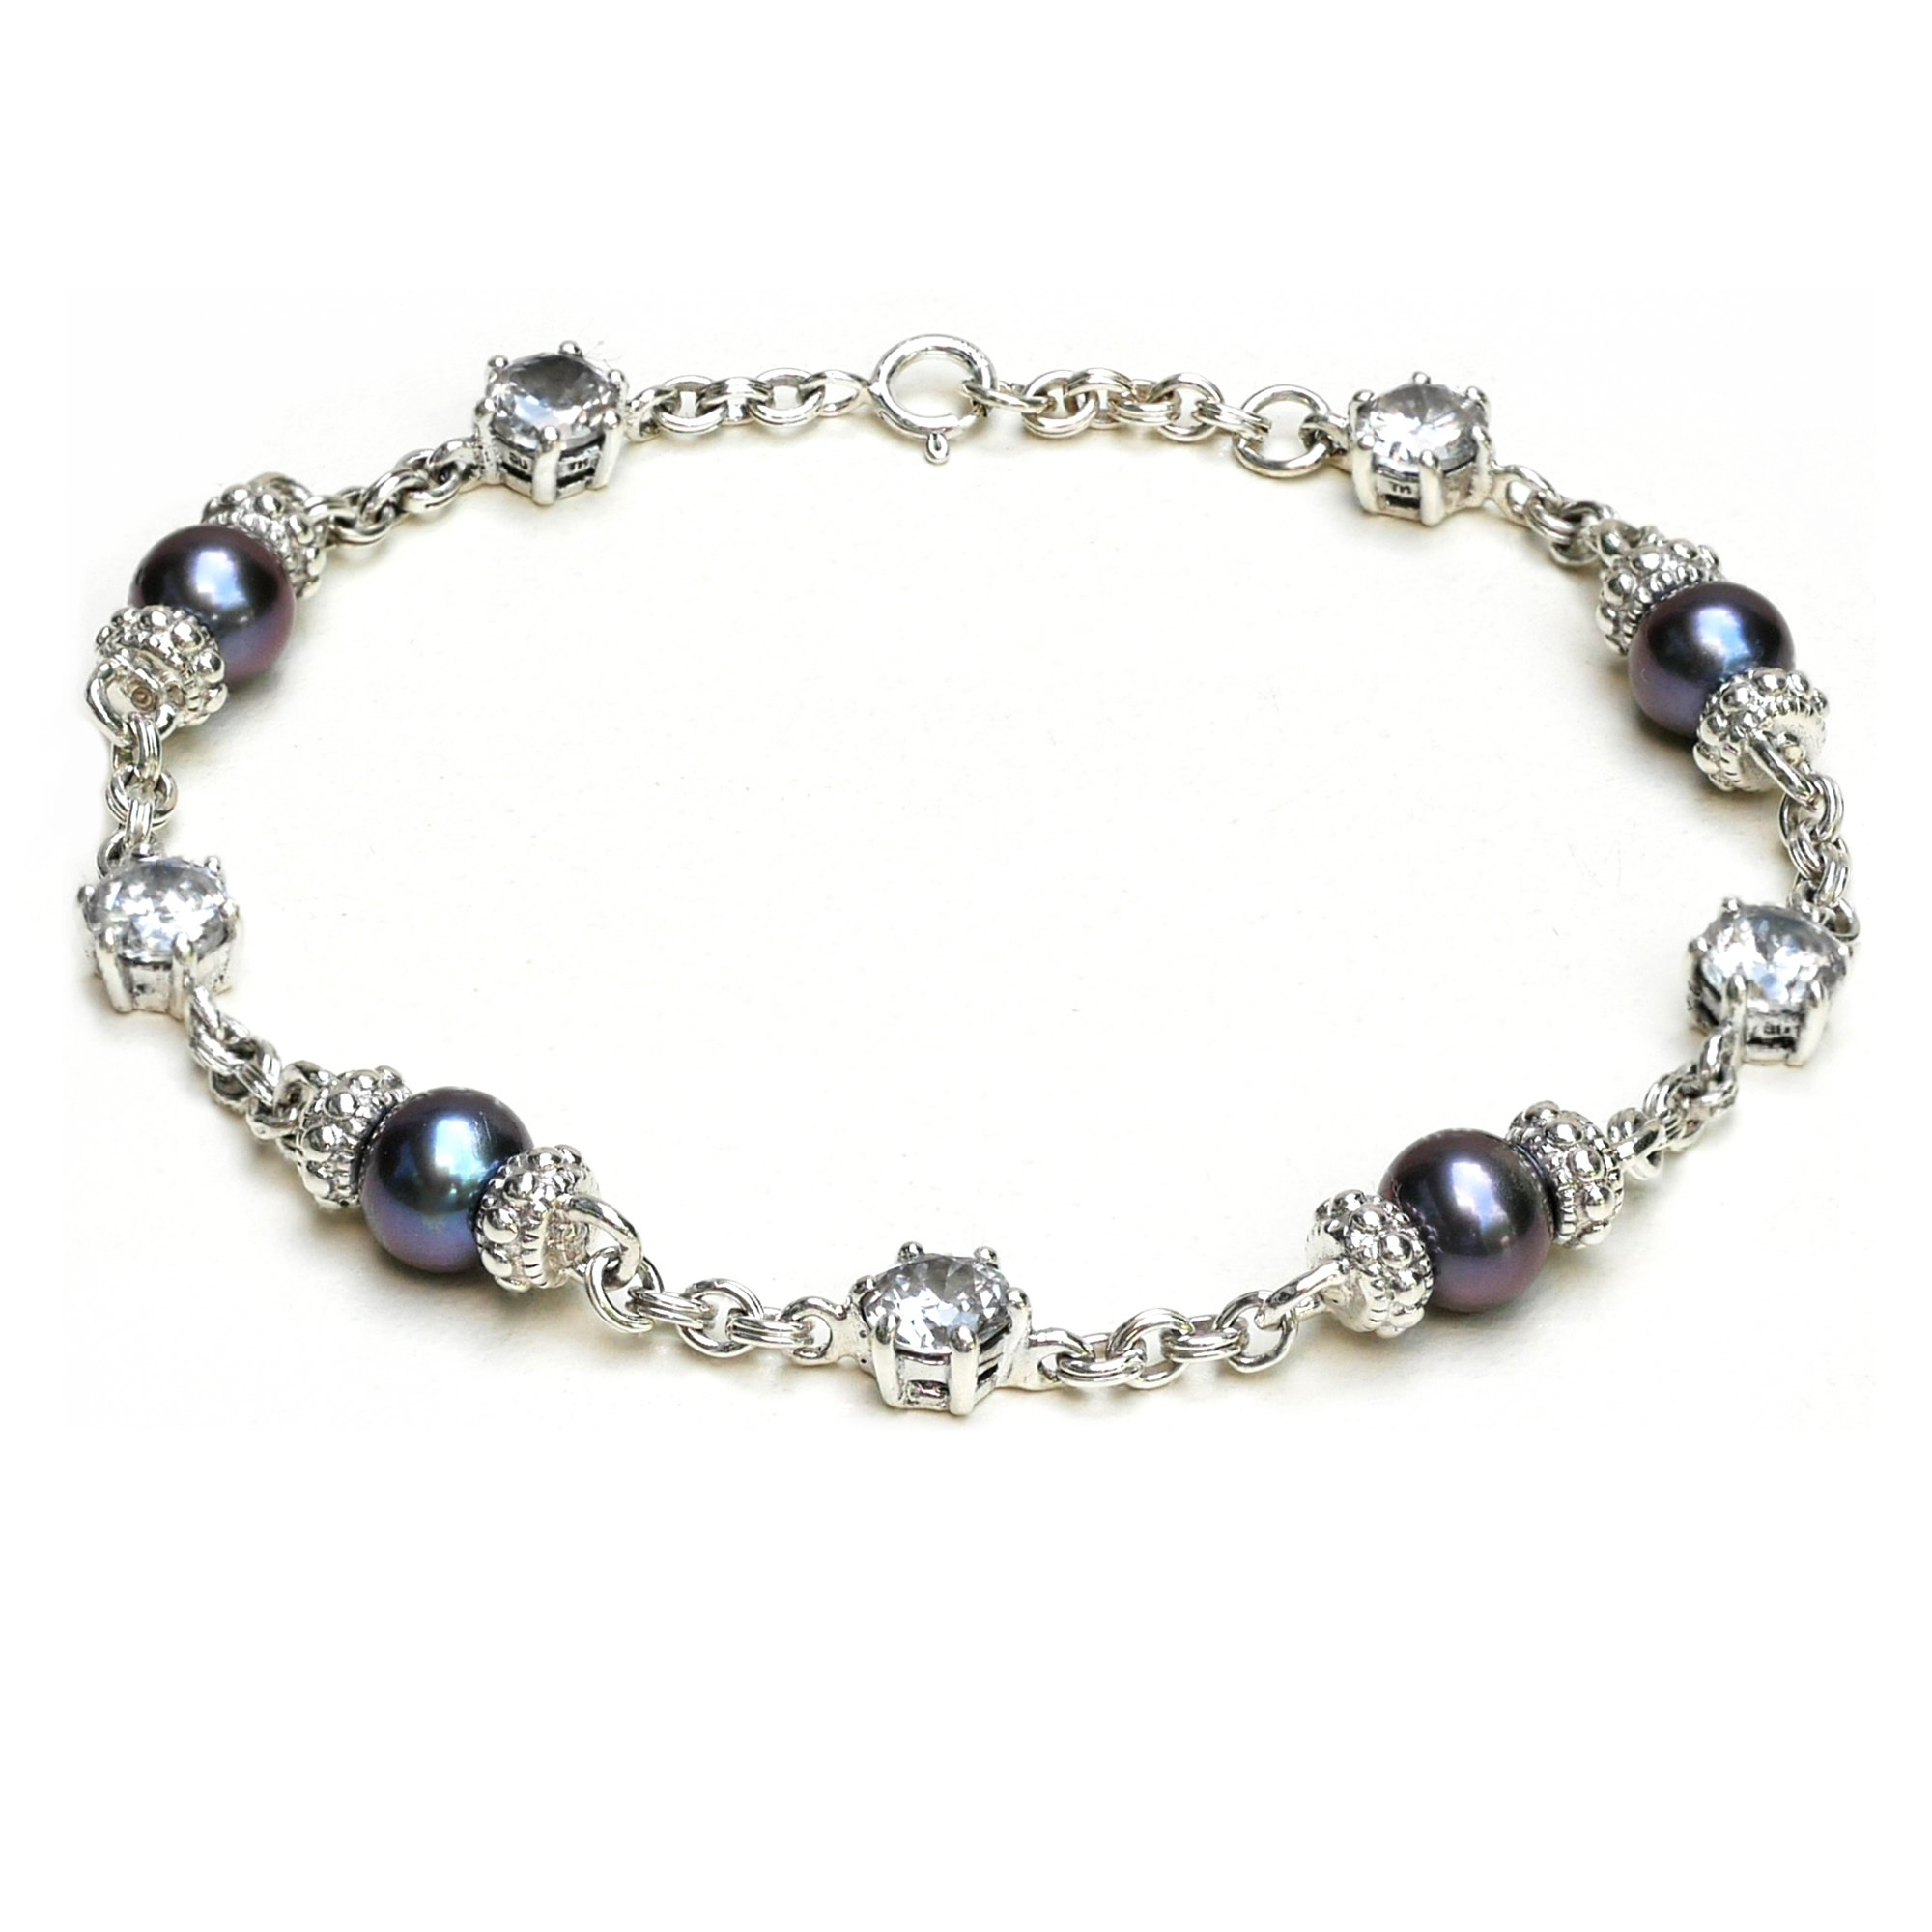 Women 925 Sterling Silver Bracelet with Tahitian Black Pearl and White Cubic Zirconia (7.5)